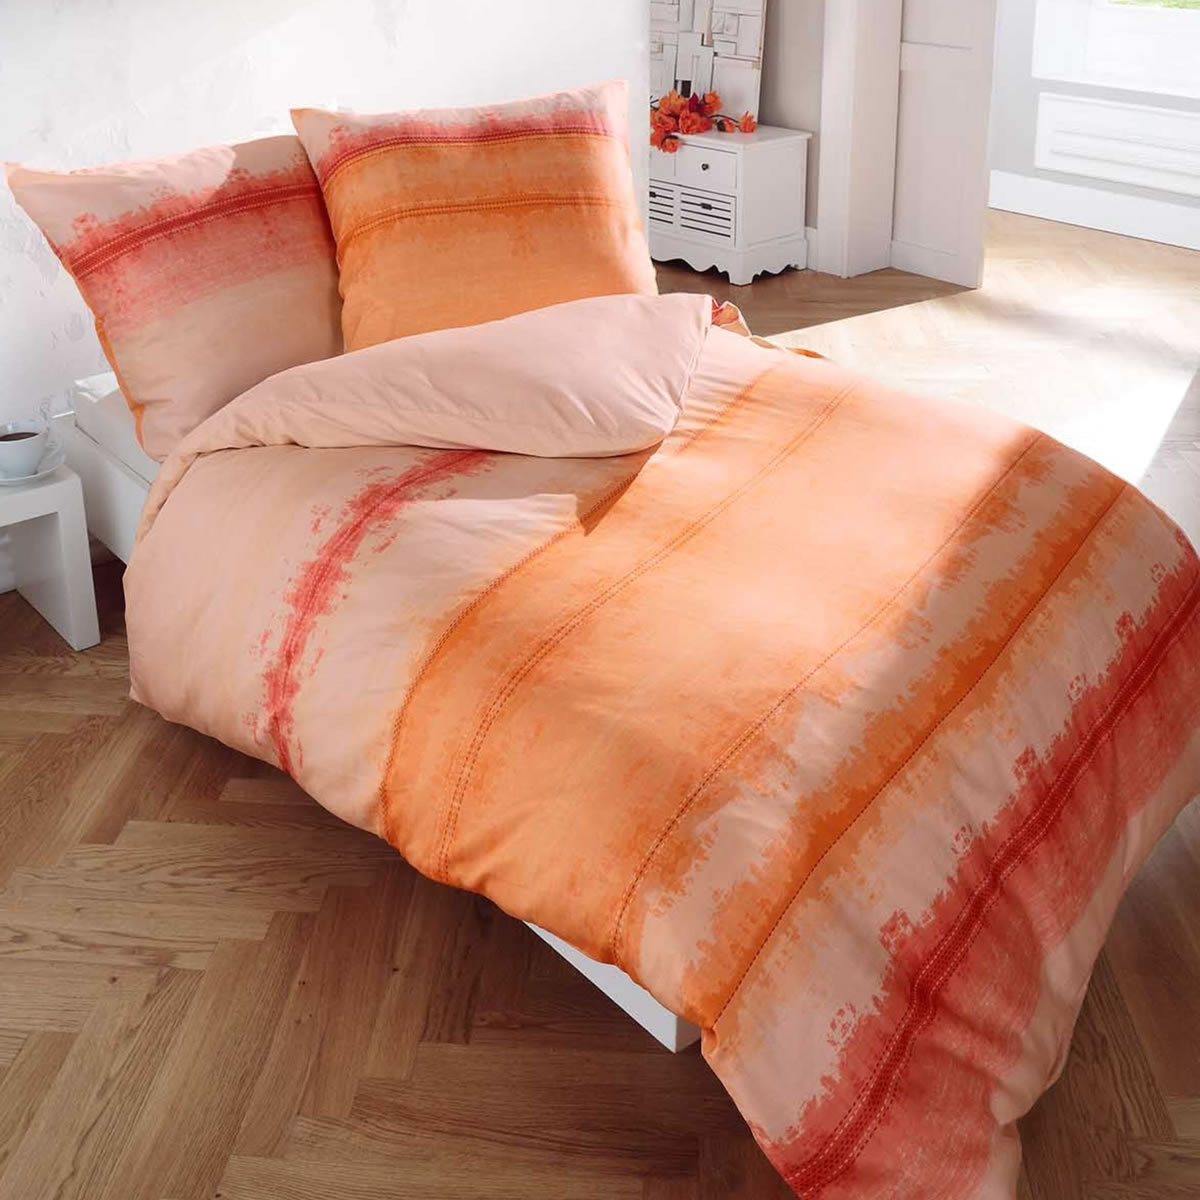 Kaeppel Biber Bettwäsche 155x220 Cm Design 6047 Echo Orange